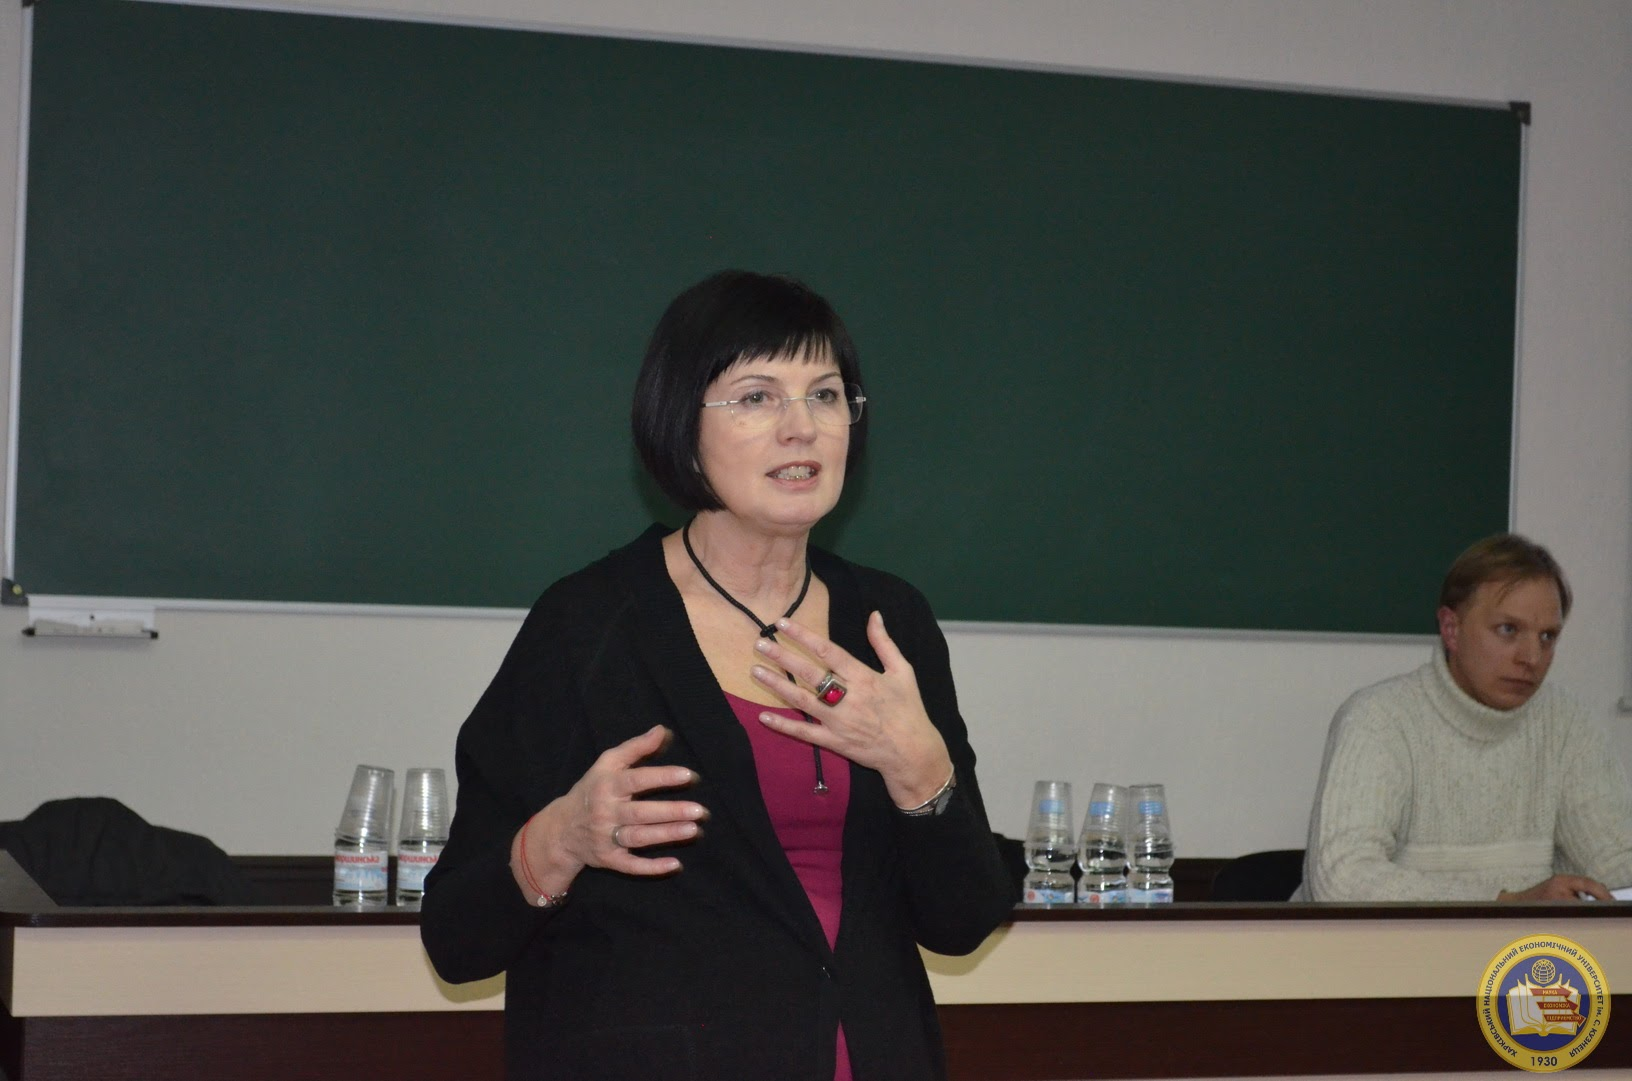 DSC_0174 Kharkiv IT Cluster held a Working Session for Students who want to launch a Startup